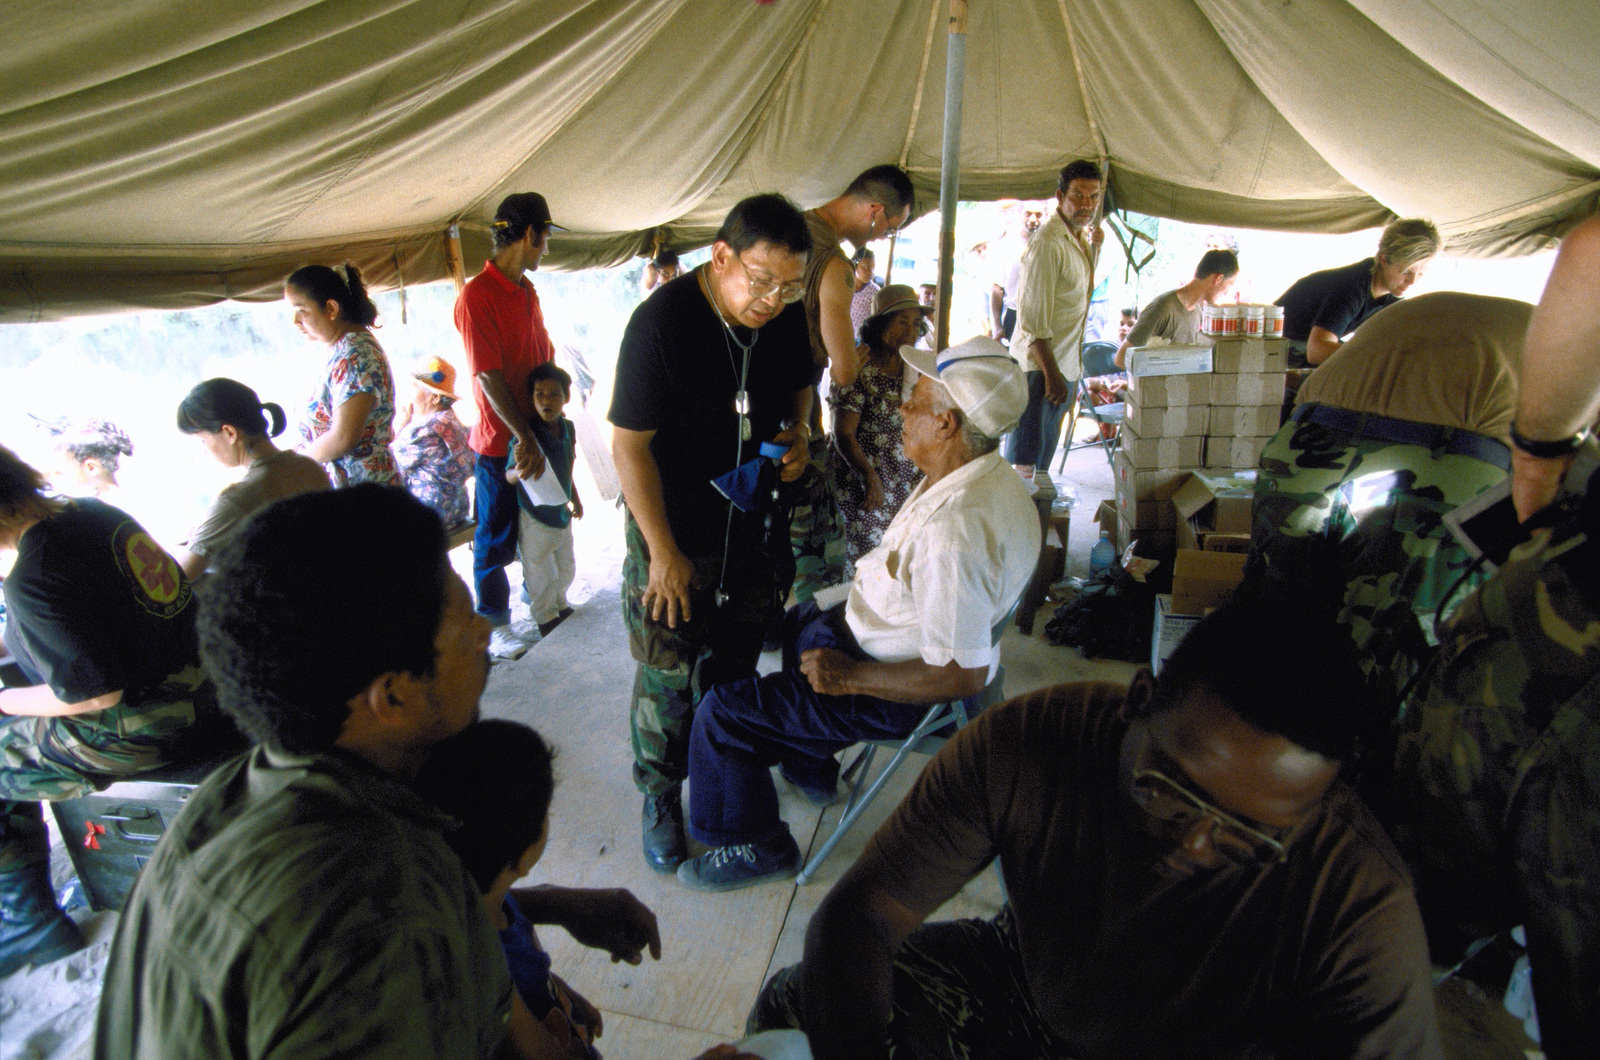 Dr. (LT. COL.), Pedro Peralta, (center) assigned to the 126th Medical Squadron, O'Hare Field, Chicago, Ill. attends to patients from the local community of Malali. 126th personnel provided three days of medical care the local population in support of the first combined humanitarian and civic assistance exercise conducted between the United States and Guyana. Military personnel from Air Force, Air Force Reserve & National Guard, Army, Army National Guard and Marine Corps participated in the exercise which included engineering and medical readiness training